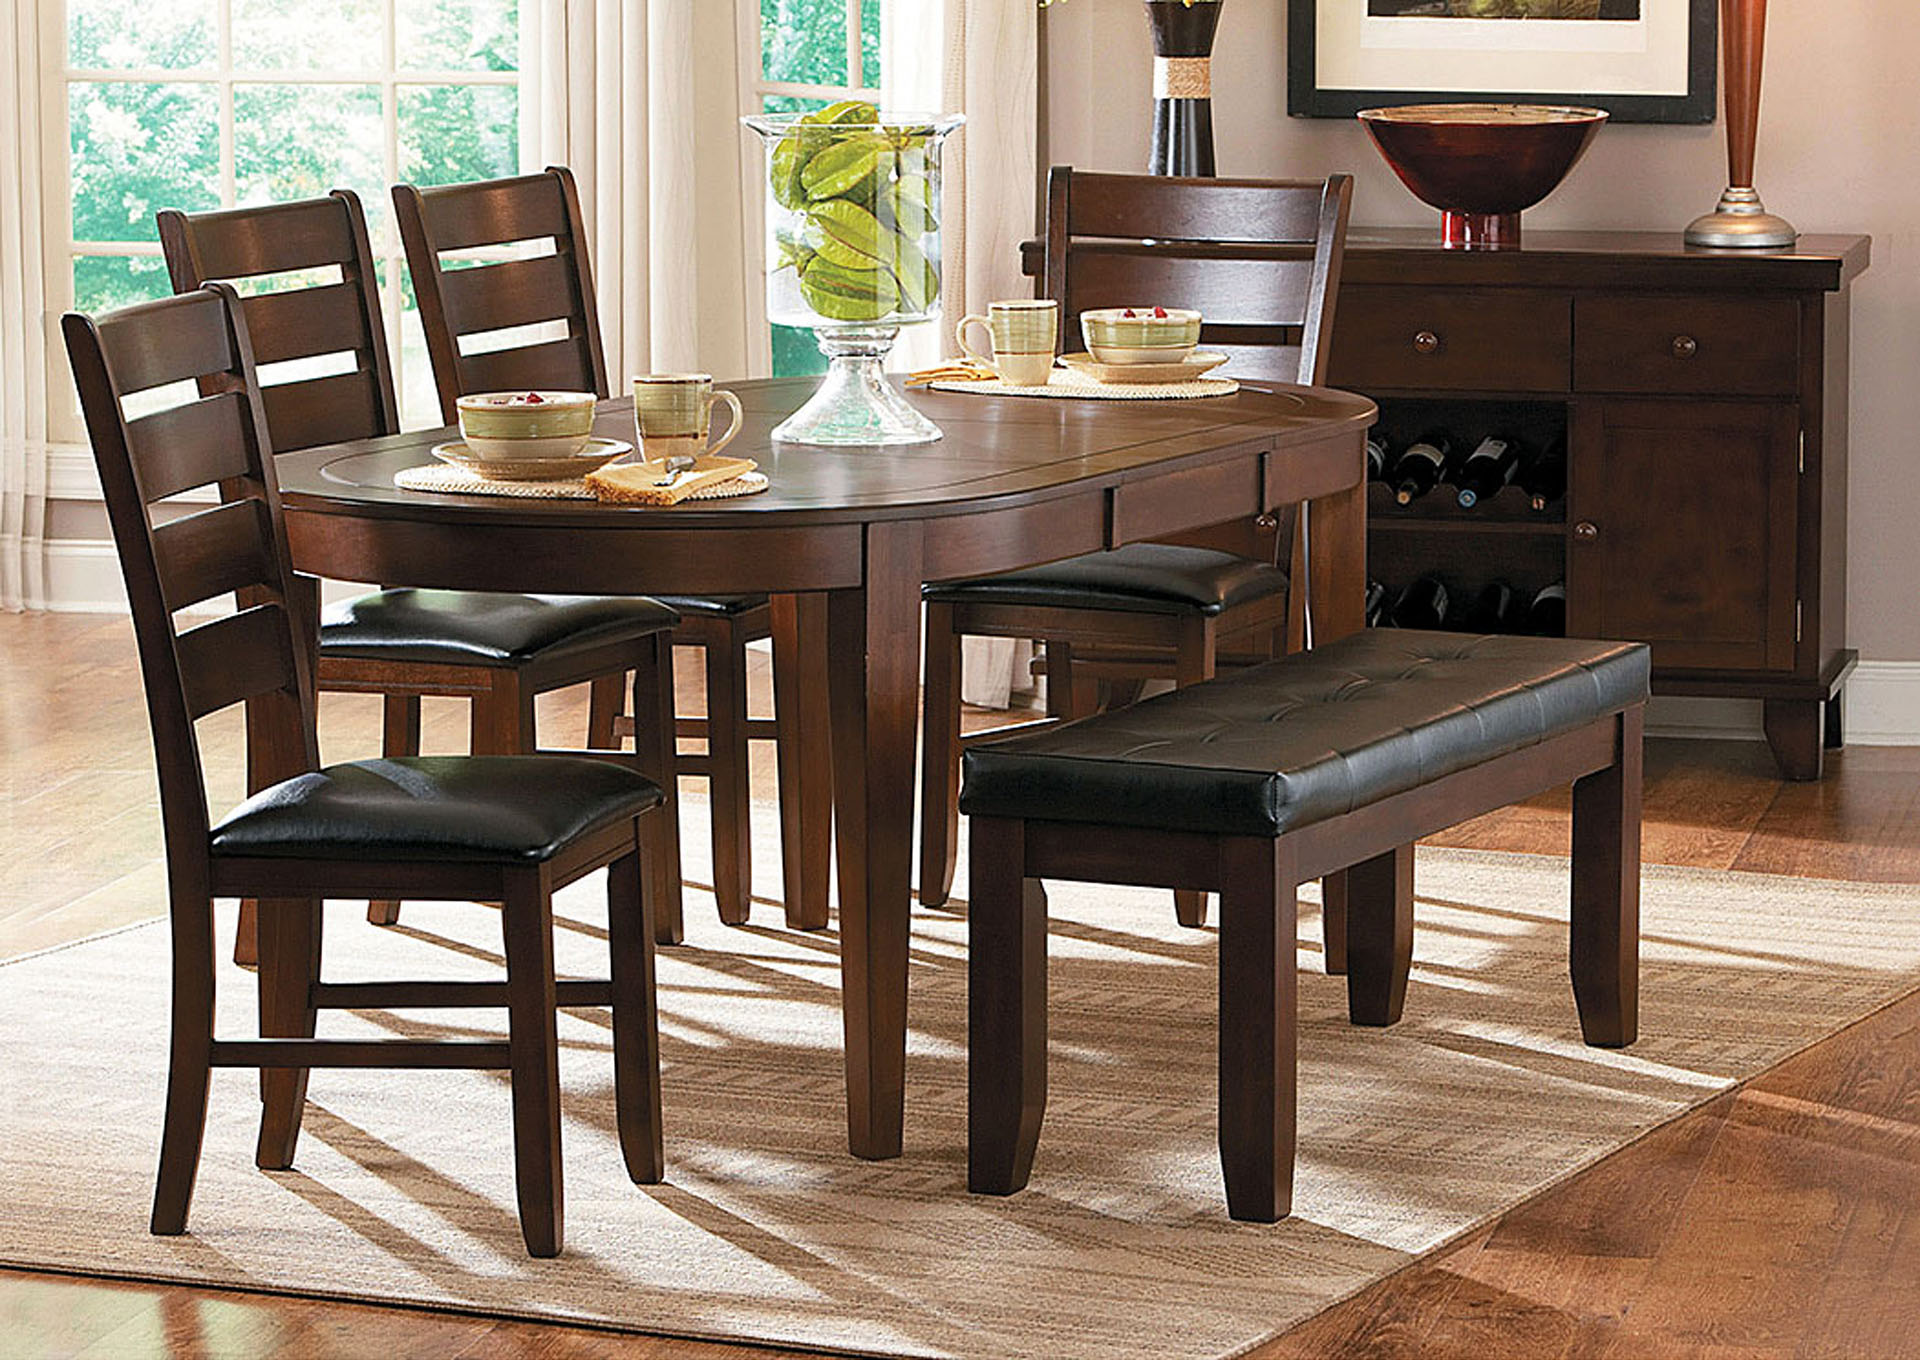 Joe B S Furniture Ameillia Oval Dining Table W 4 Side Chairs